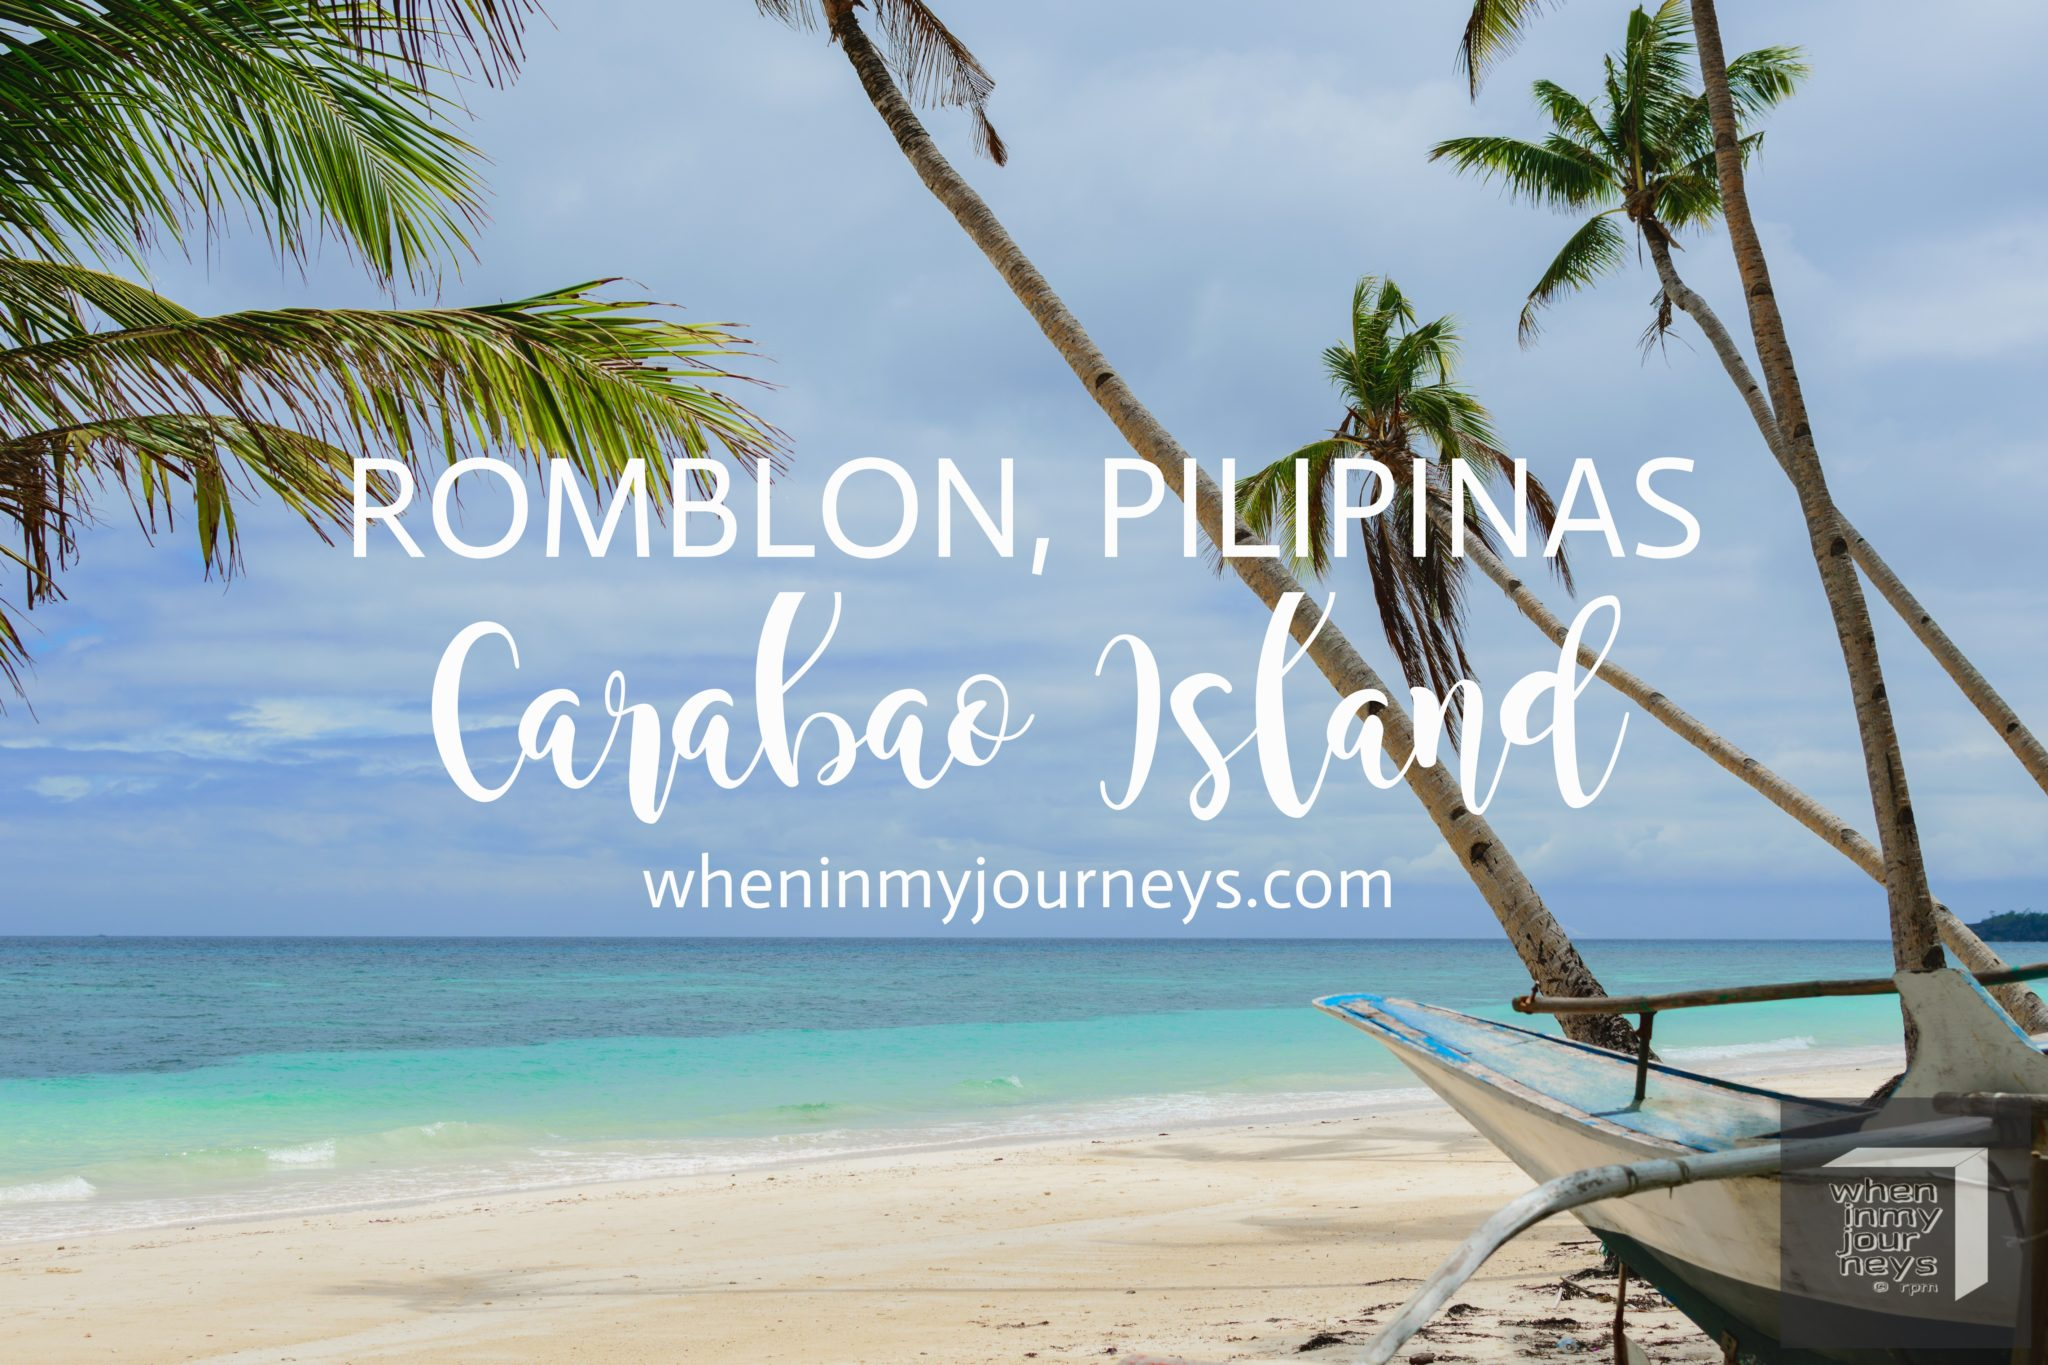 Carabao Island Romblon Portfolio Featured Image